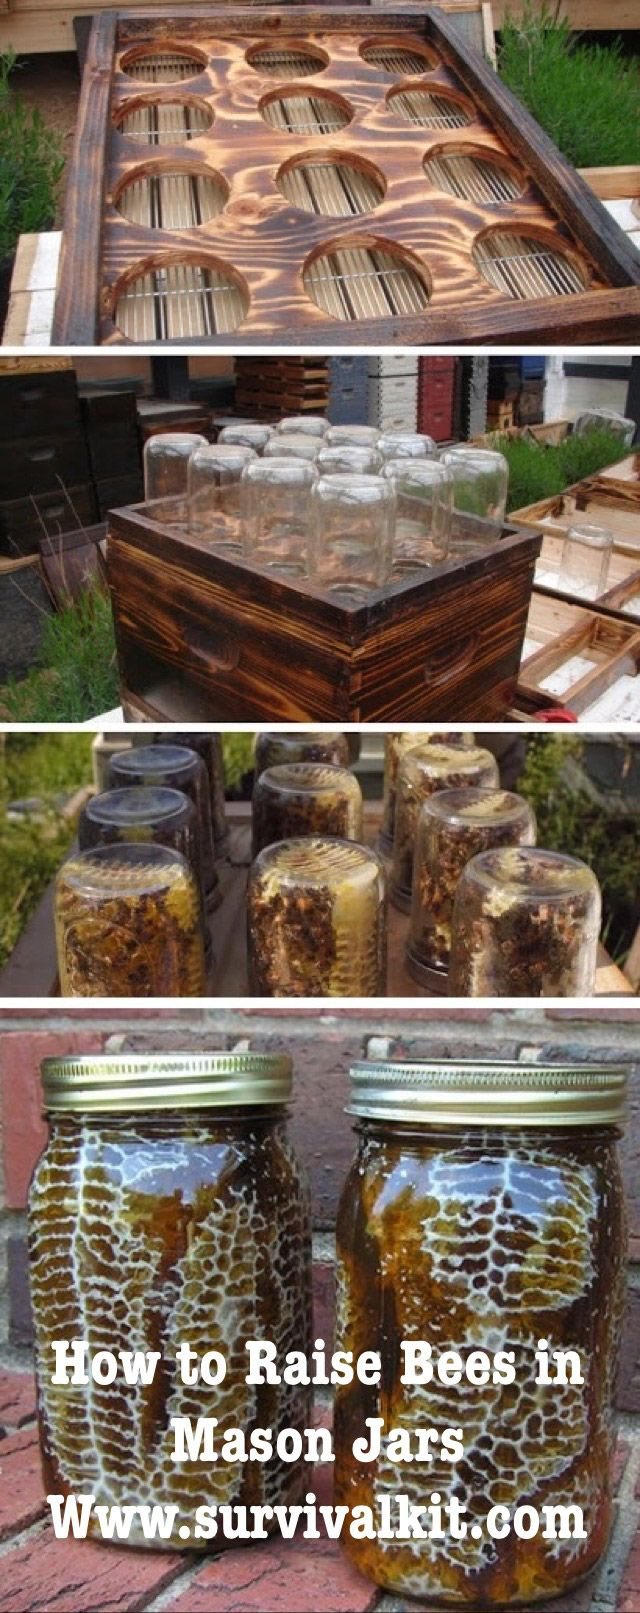 How to Raise Honeybees in Mason Jars Getting Started Before you do anything, it's important to use common sense and realize that not everyone can build a hive for thousands of bees in their back ya...